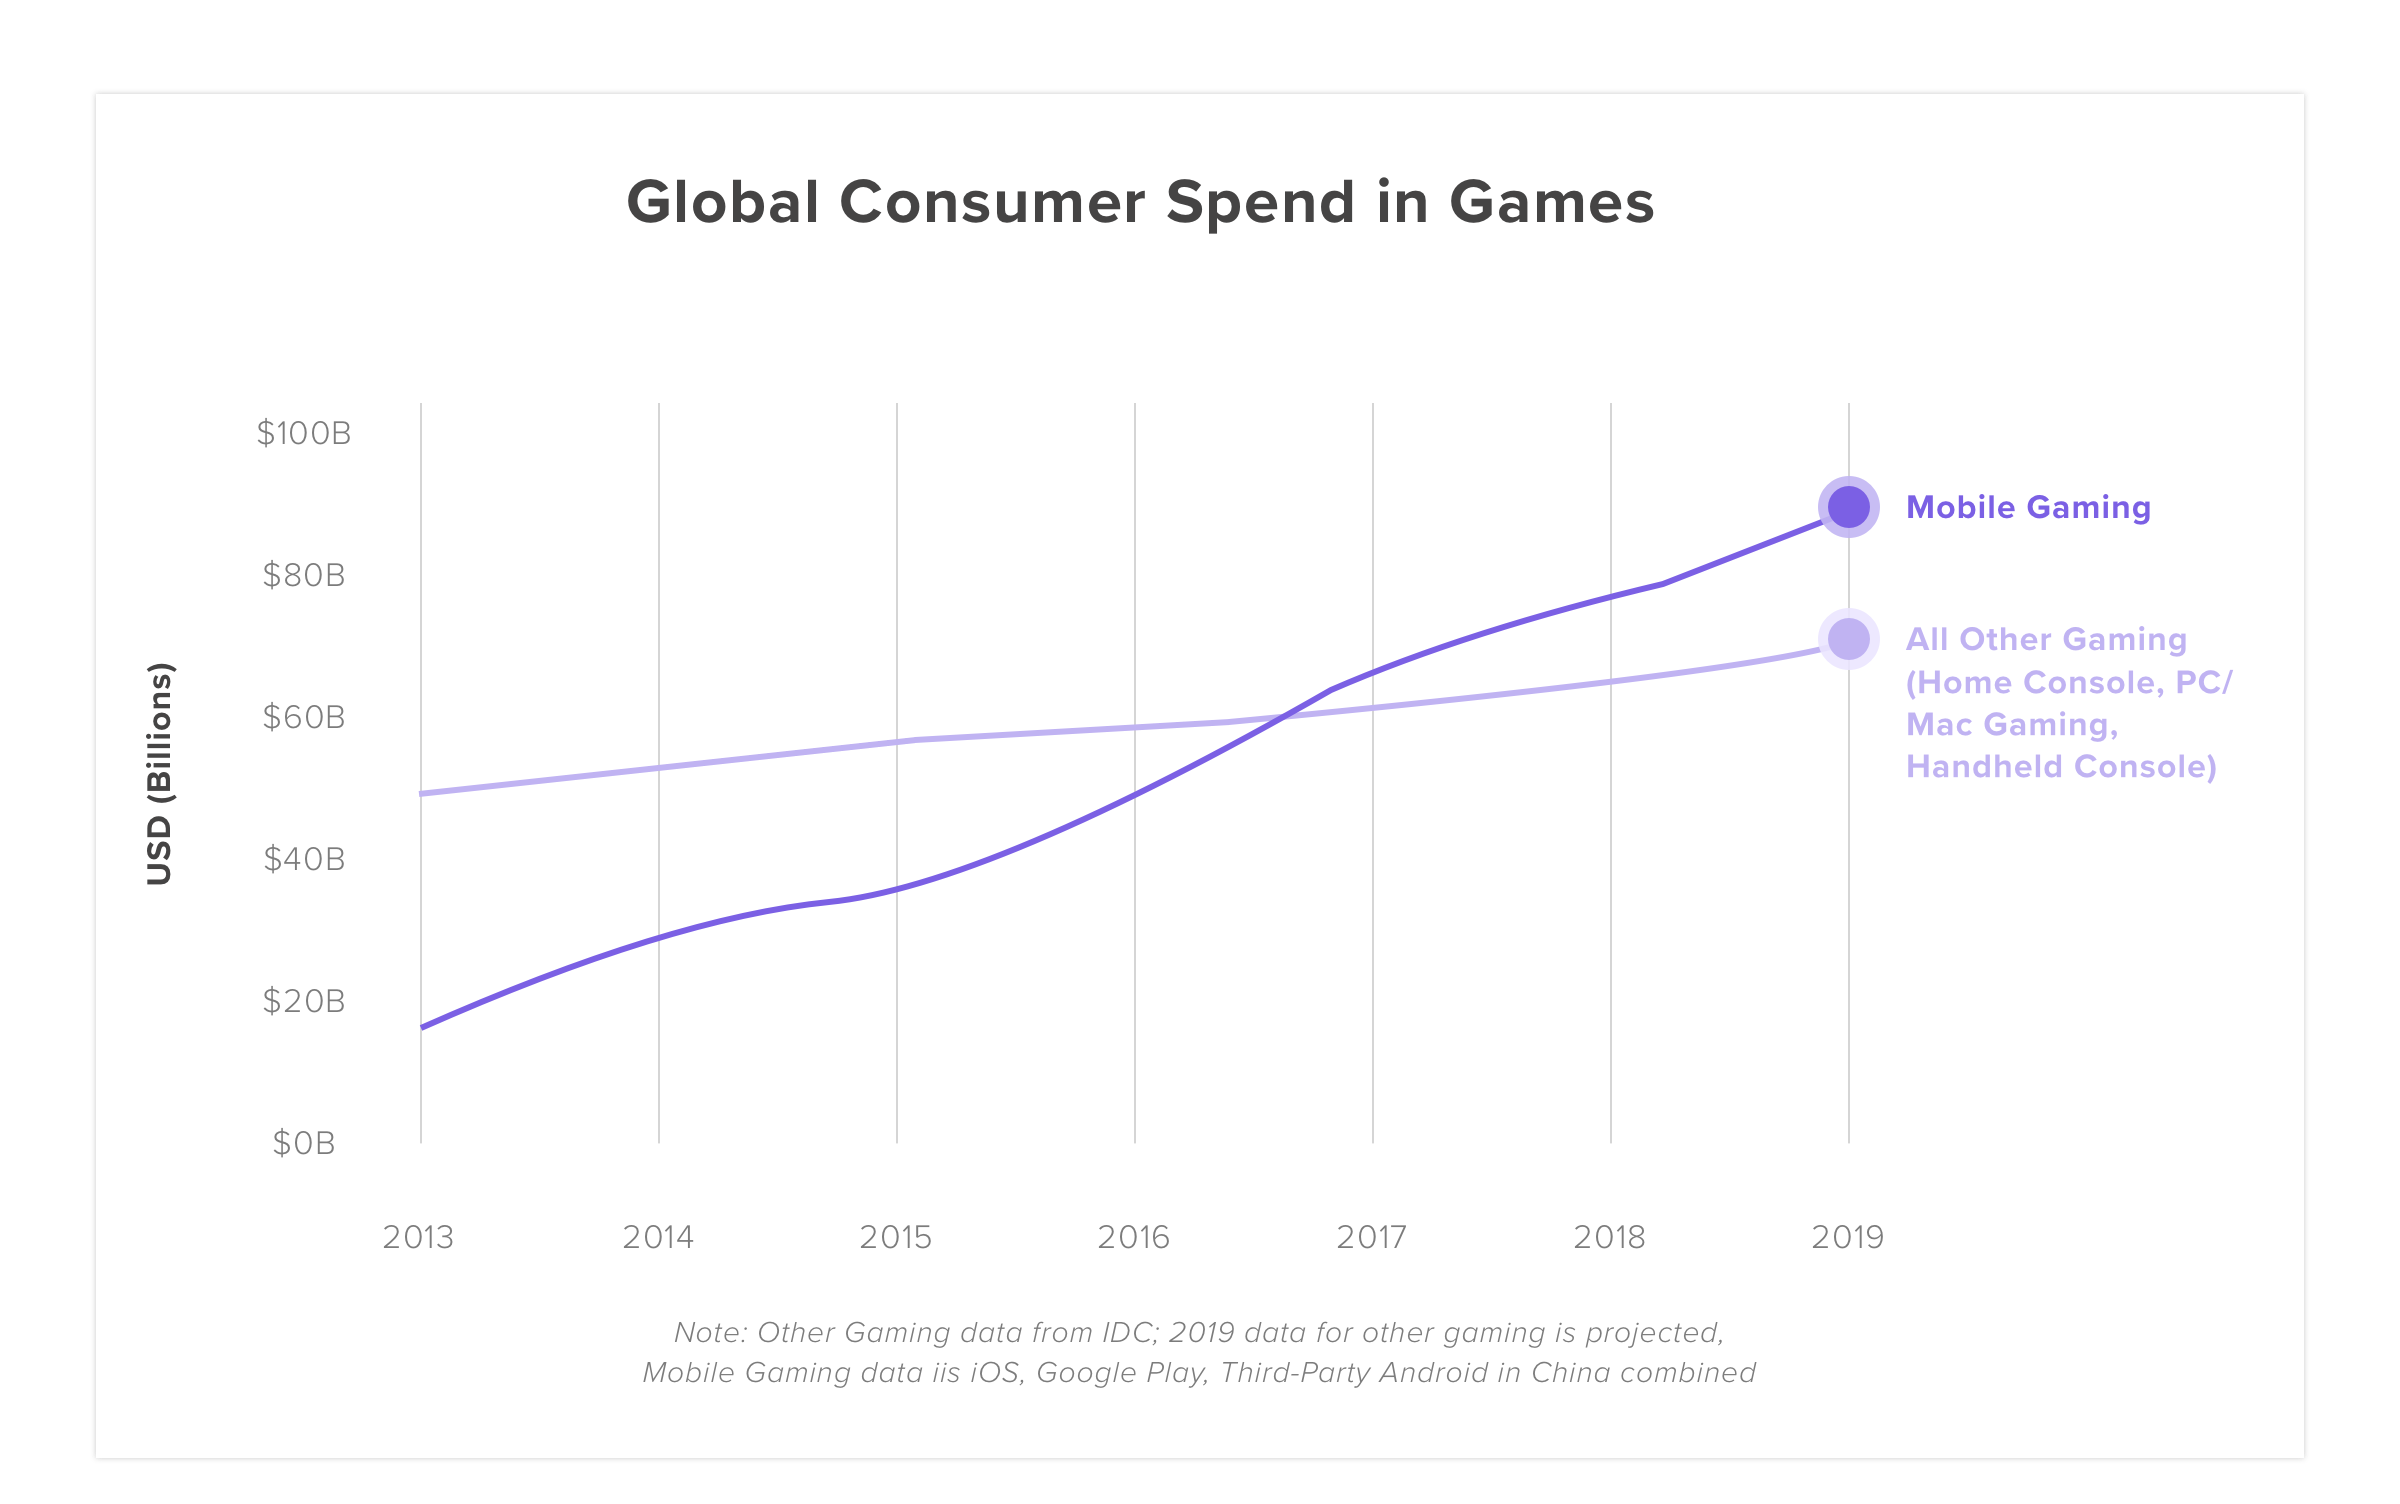 Mobile Gaming Spend